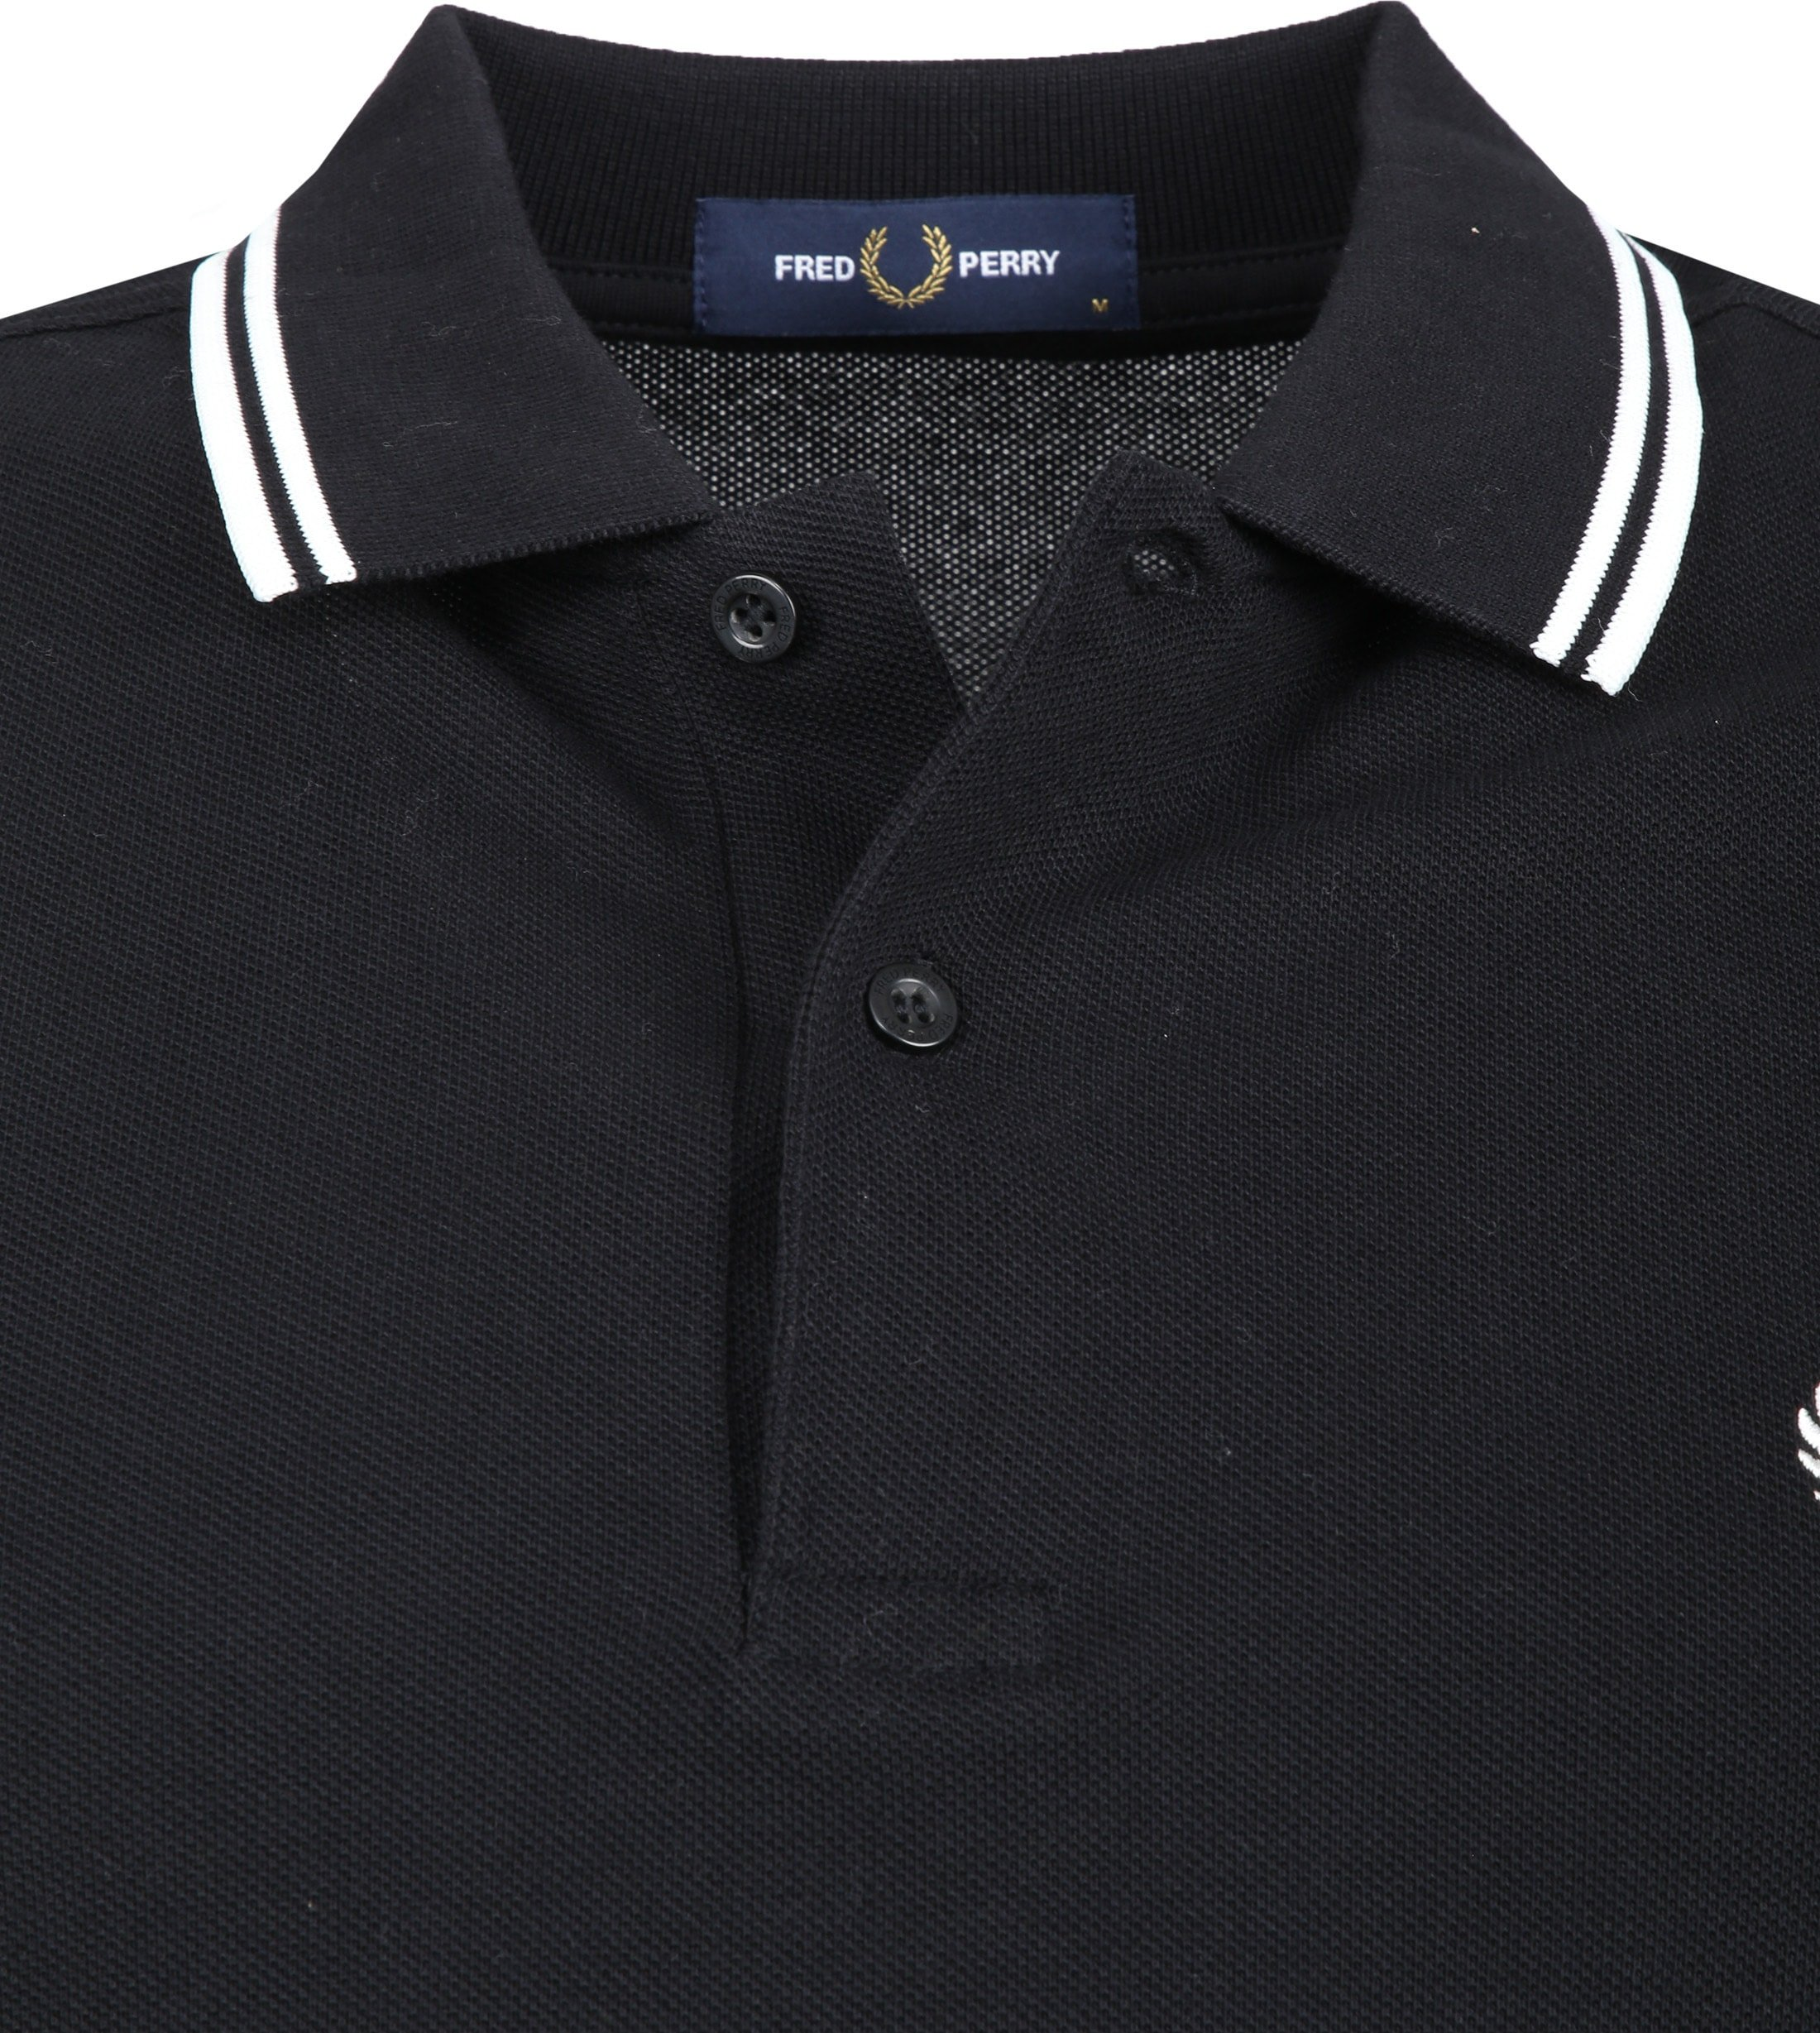 Fred Perry LS Polo Zwart 102 foto 1